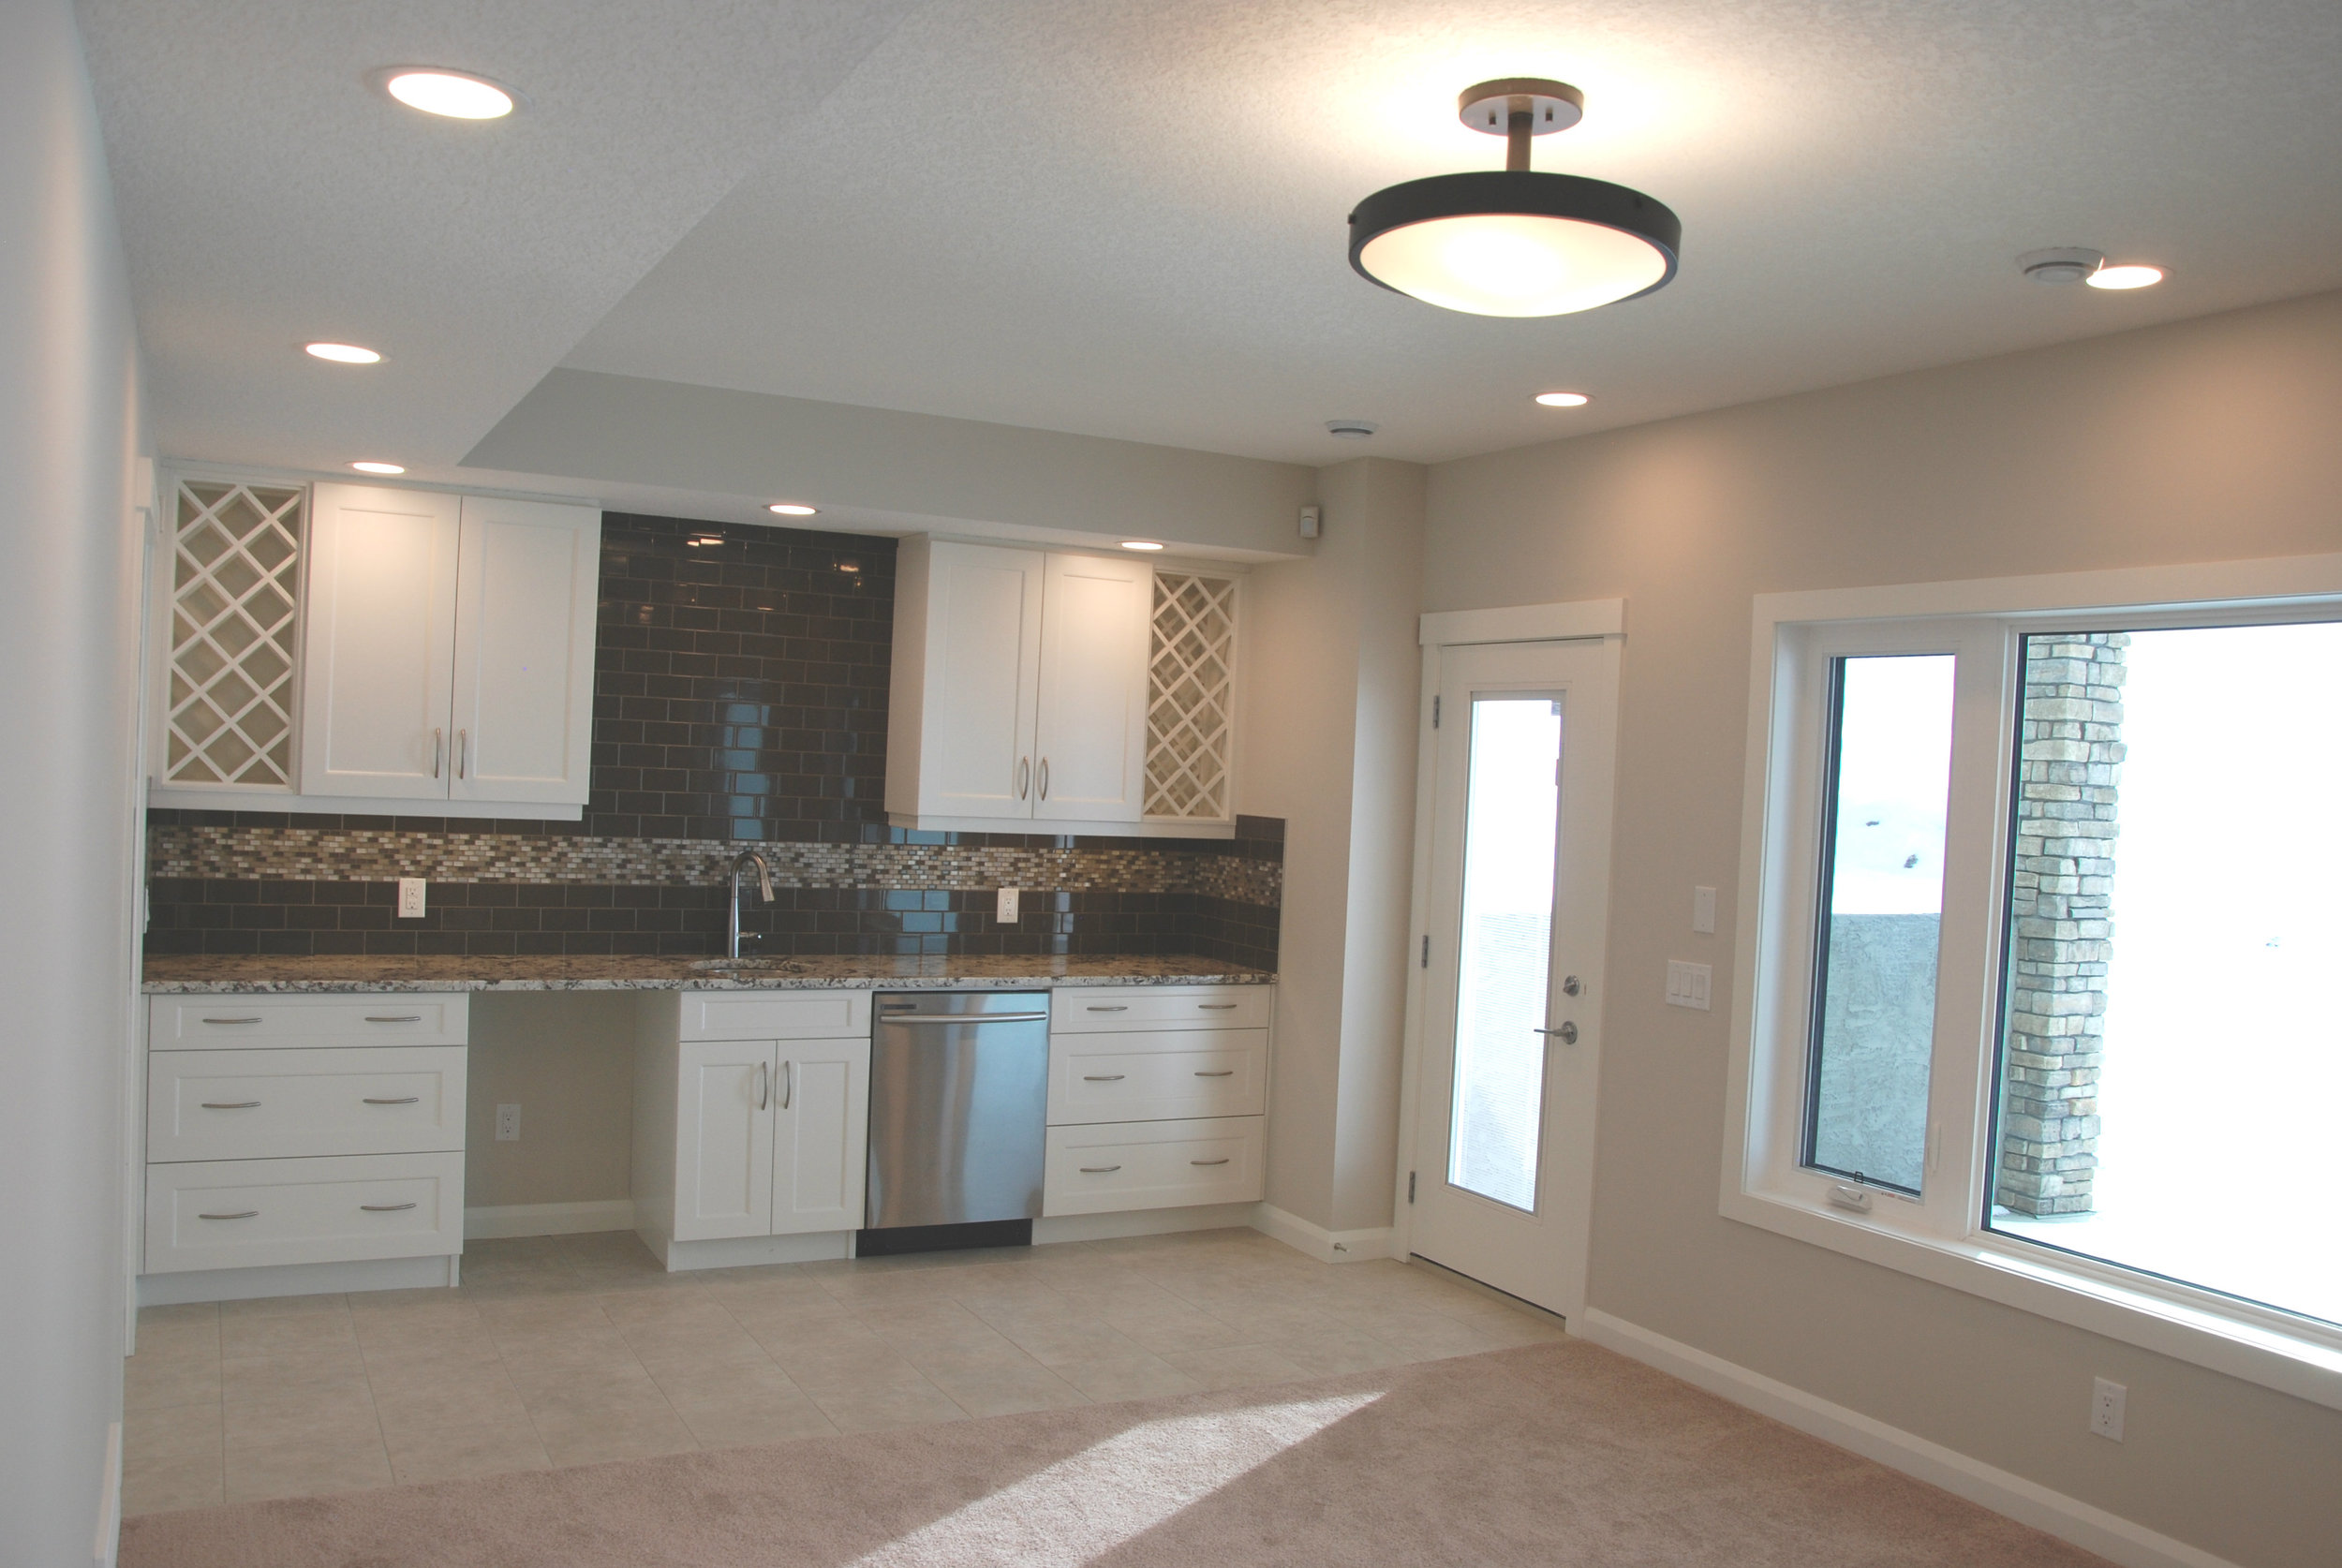 The generous downstairs entertaining area features a tiled backsplash and bar area as well as access to the west facing covered deck.